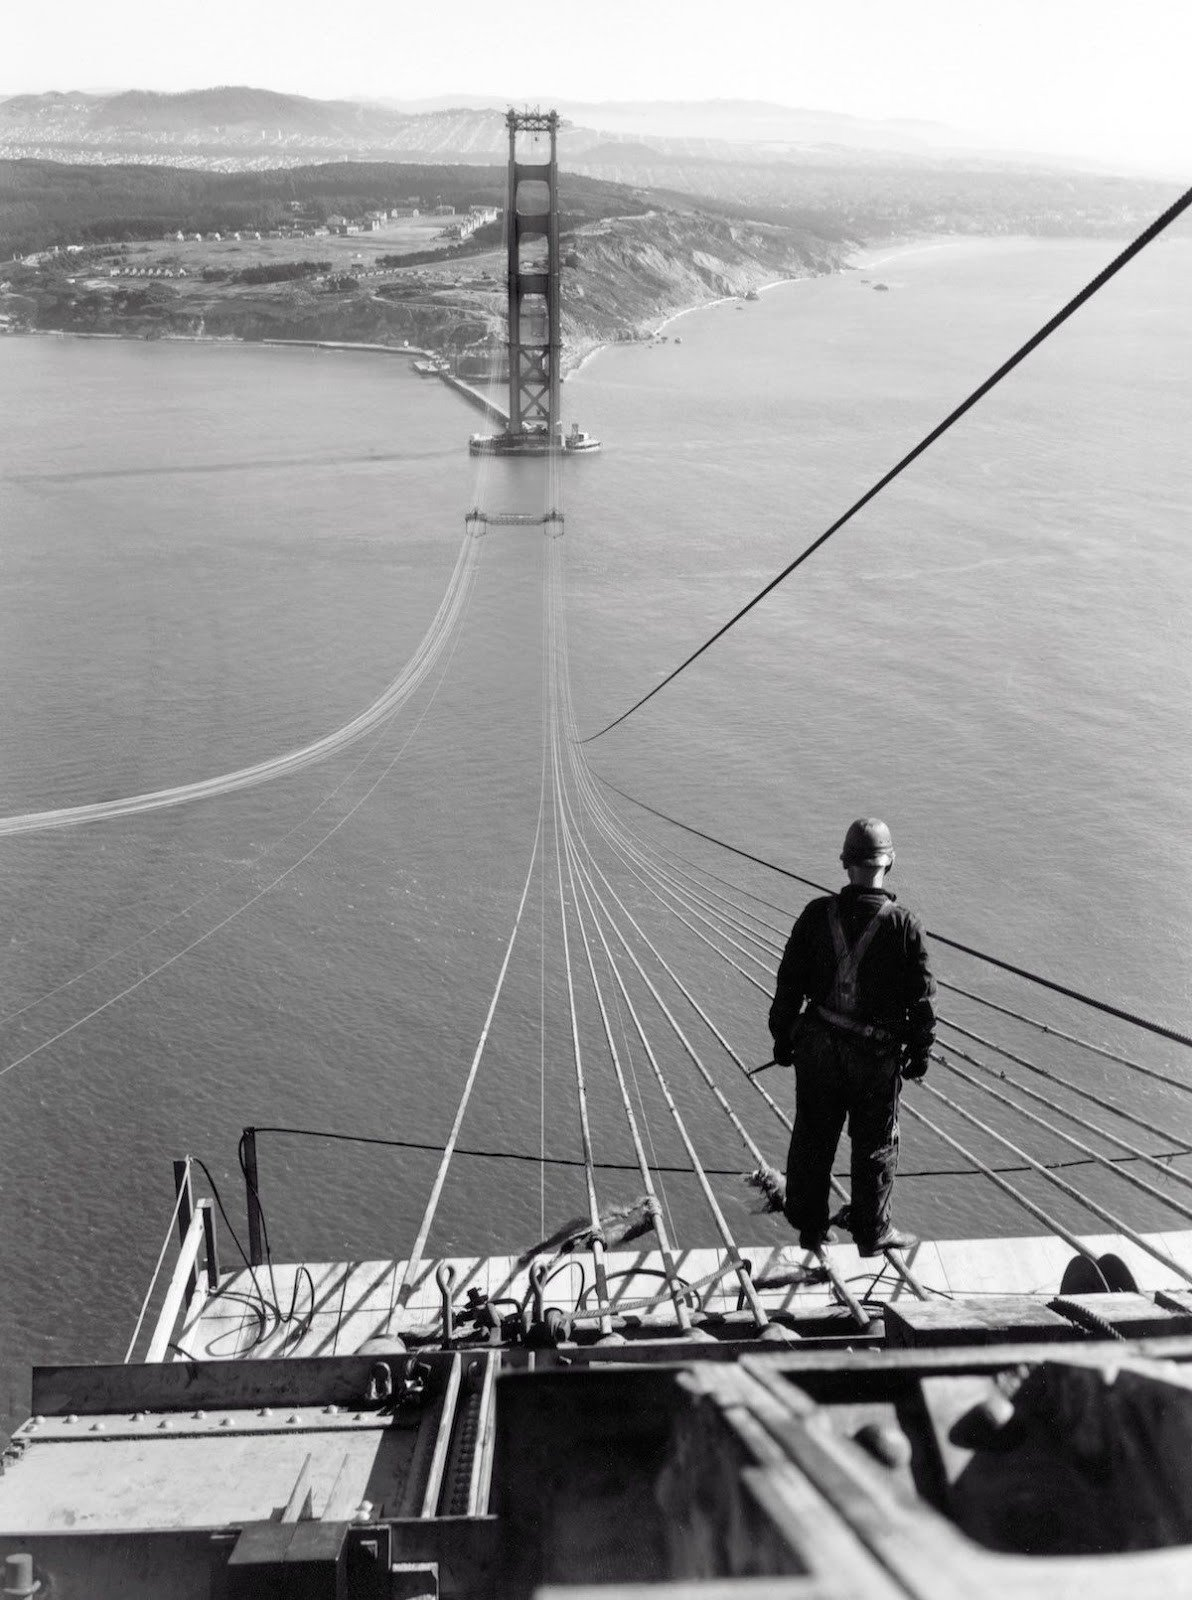 A man stands on the first cables of the Golden Gate Bridge during its construction,1935. Image Source: YouTube/Medium